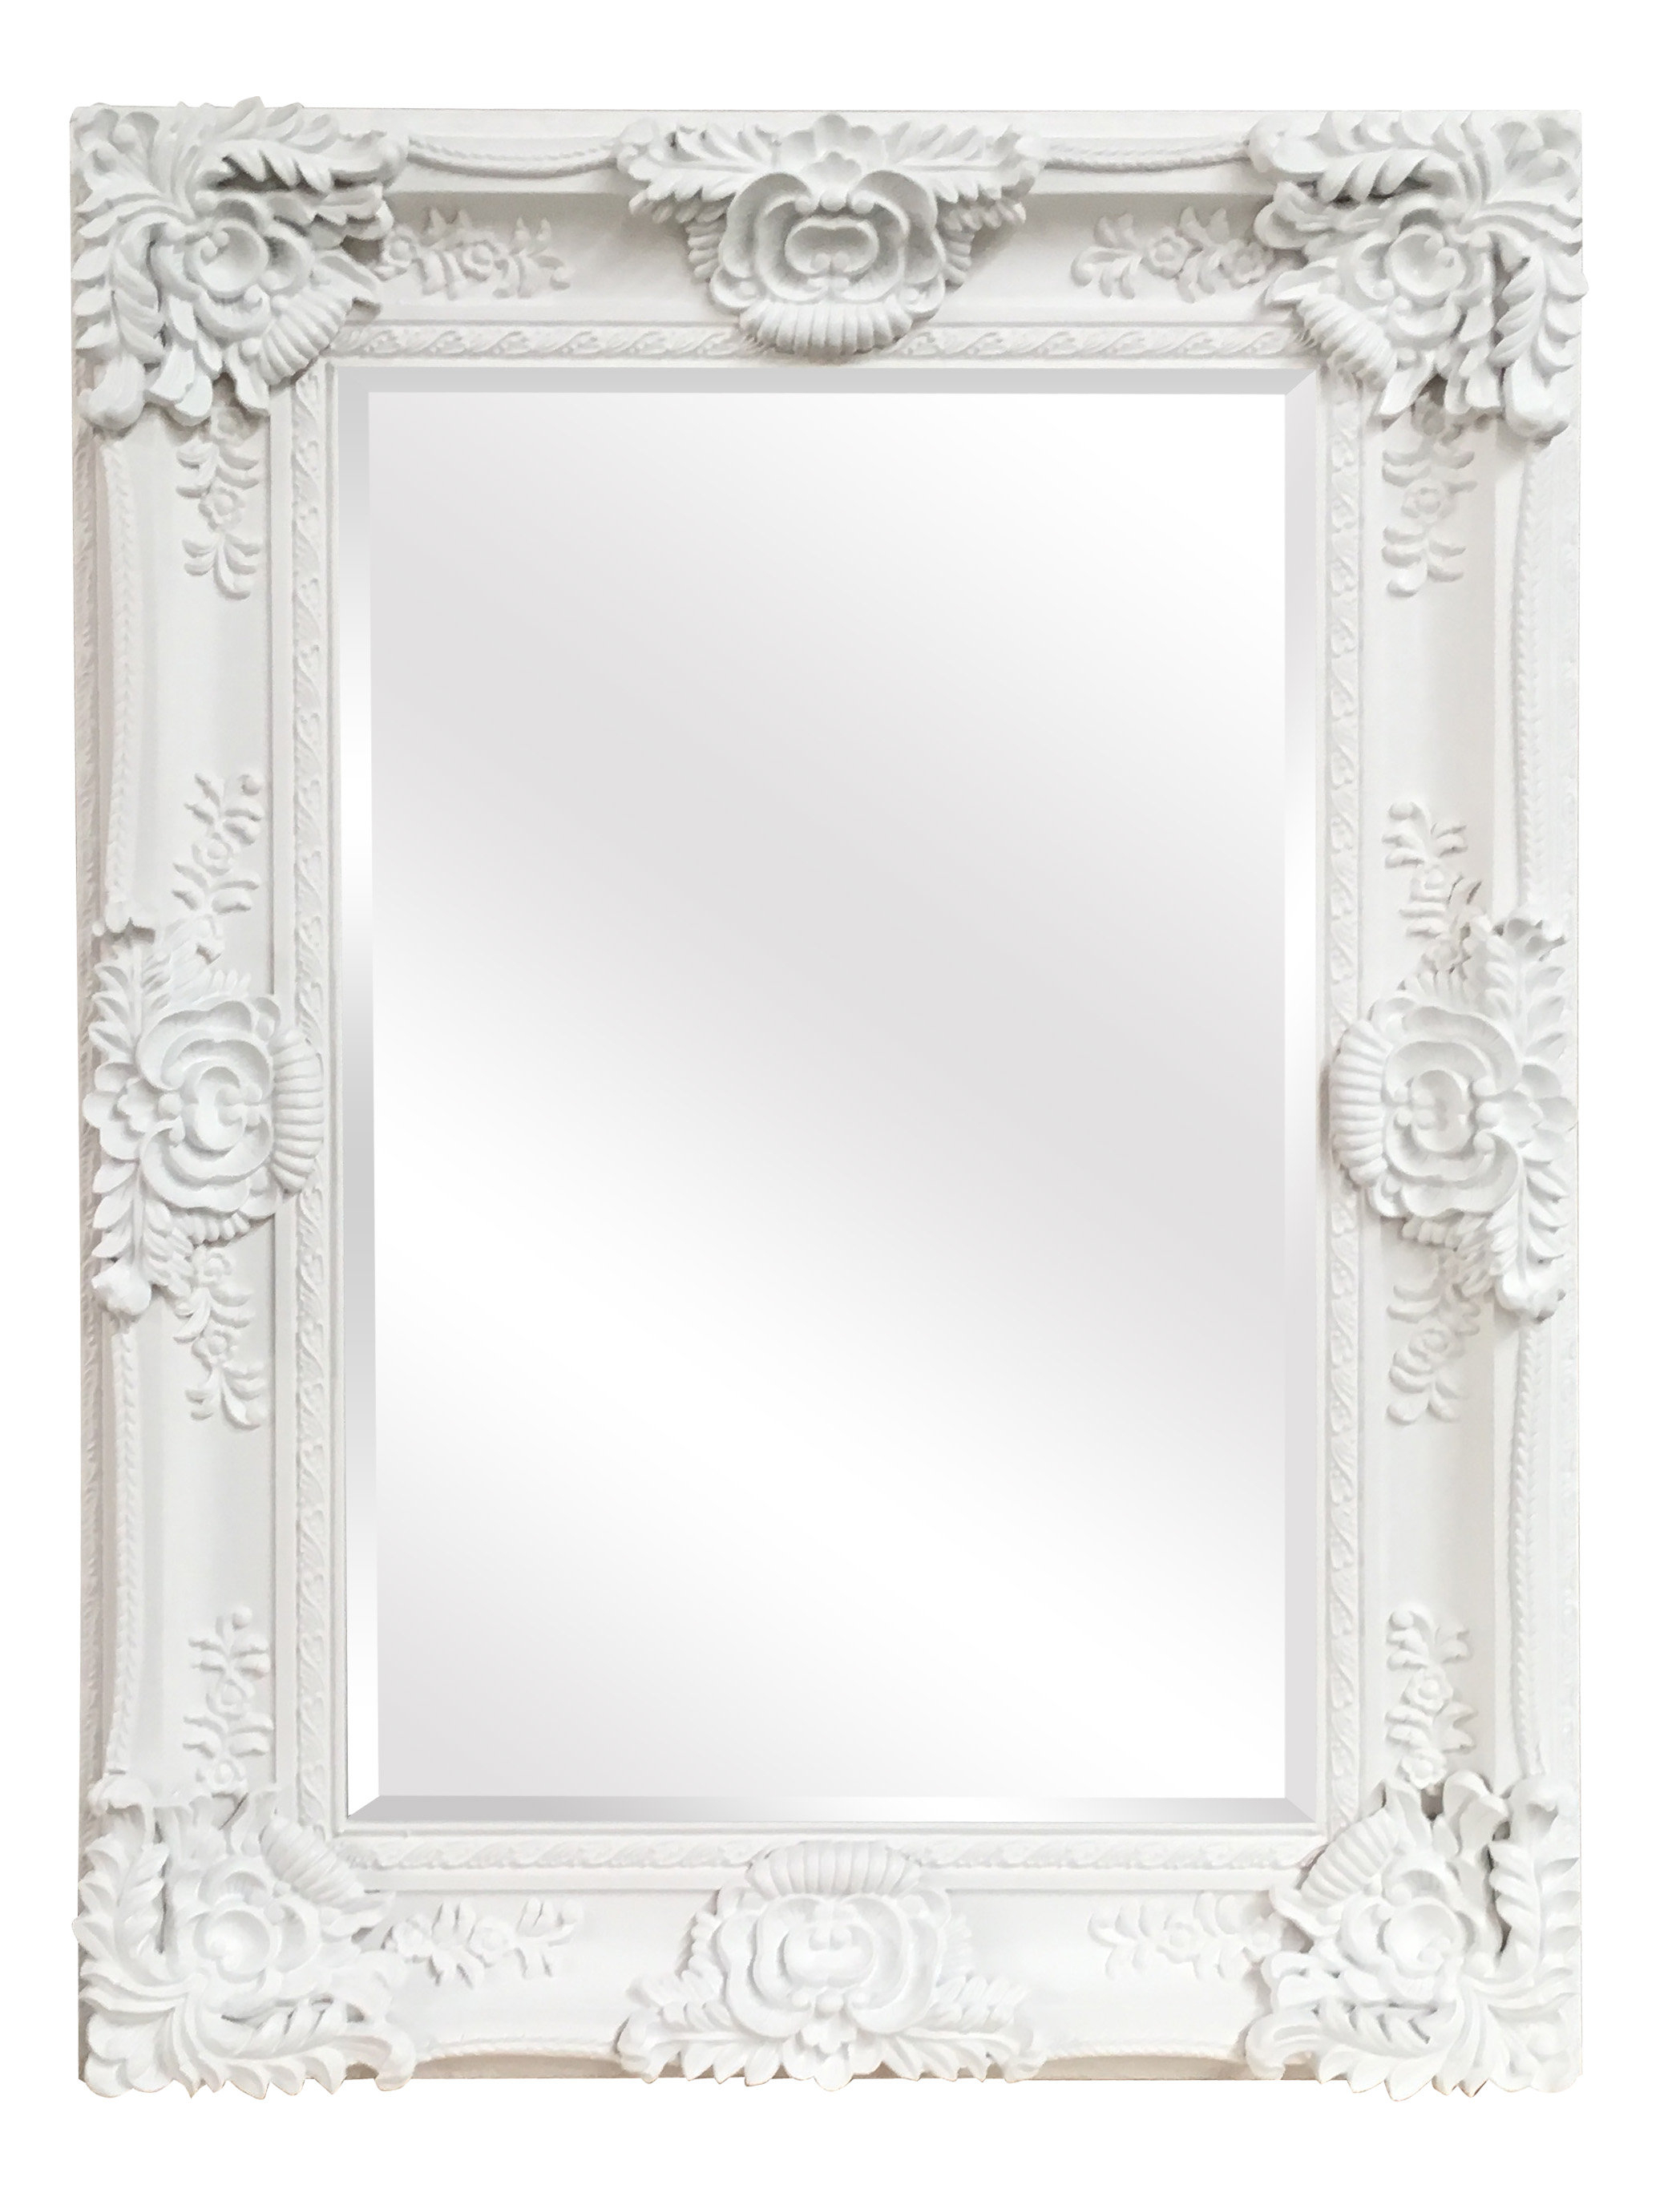 Astoria Grand Beaston Accent Mirror Regarding Famous Ulus Accent Mirrors (View 12 of 20)